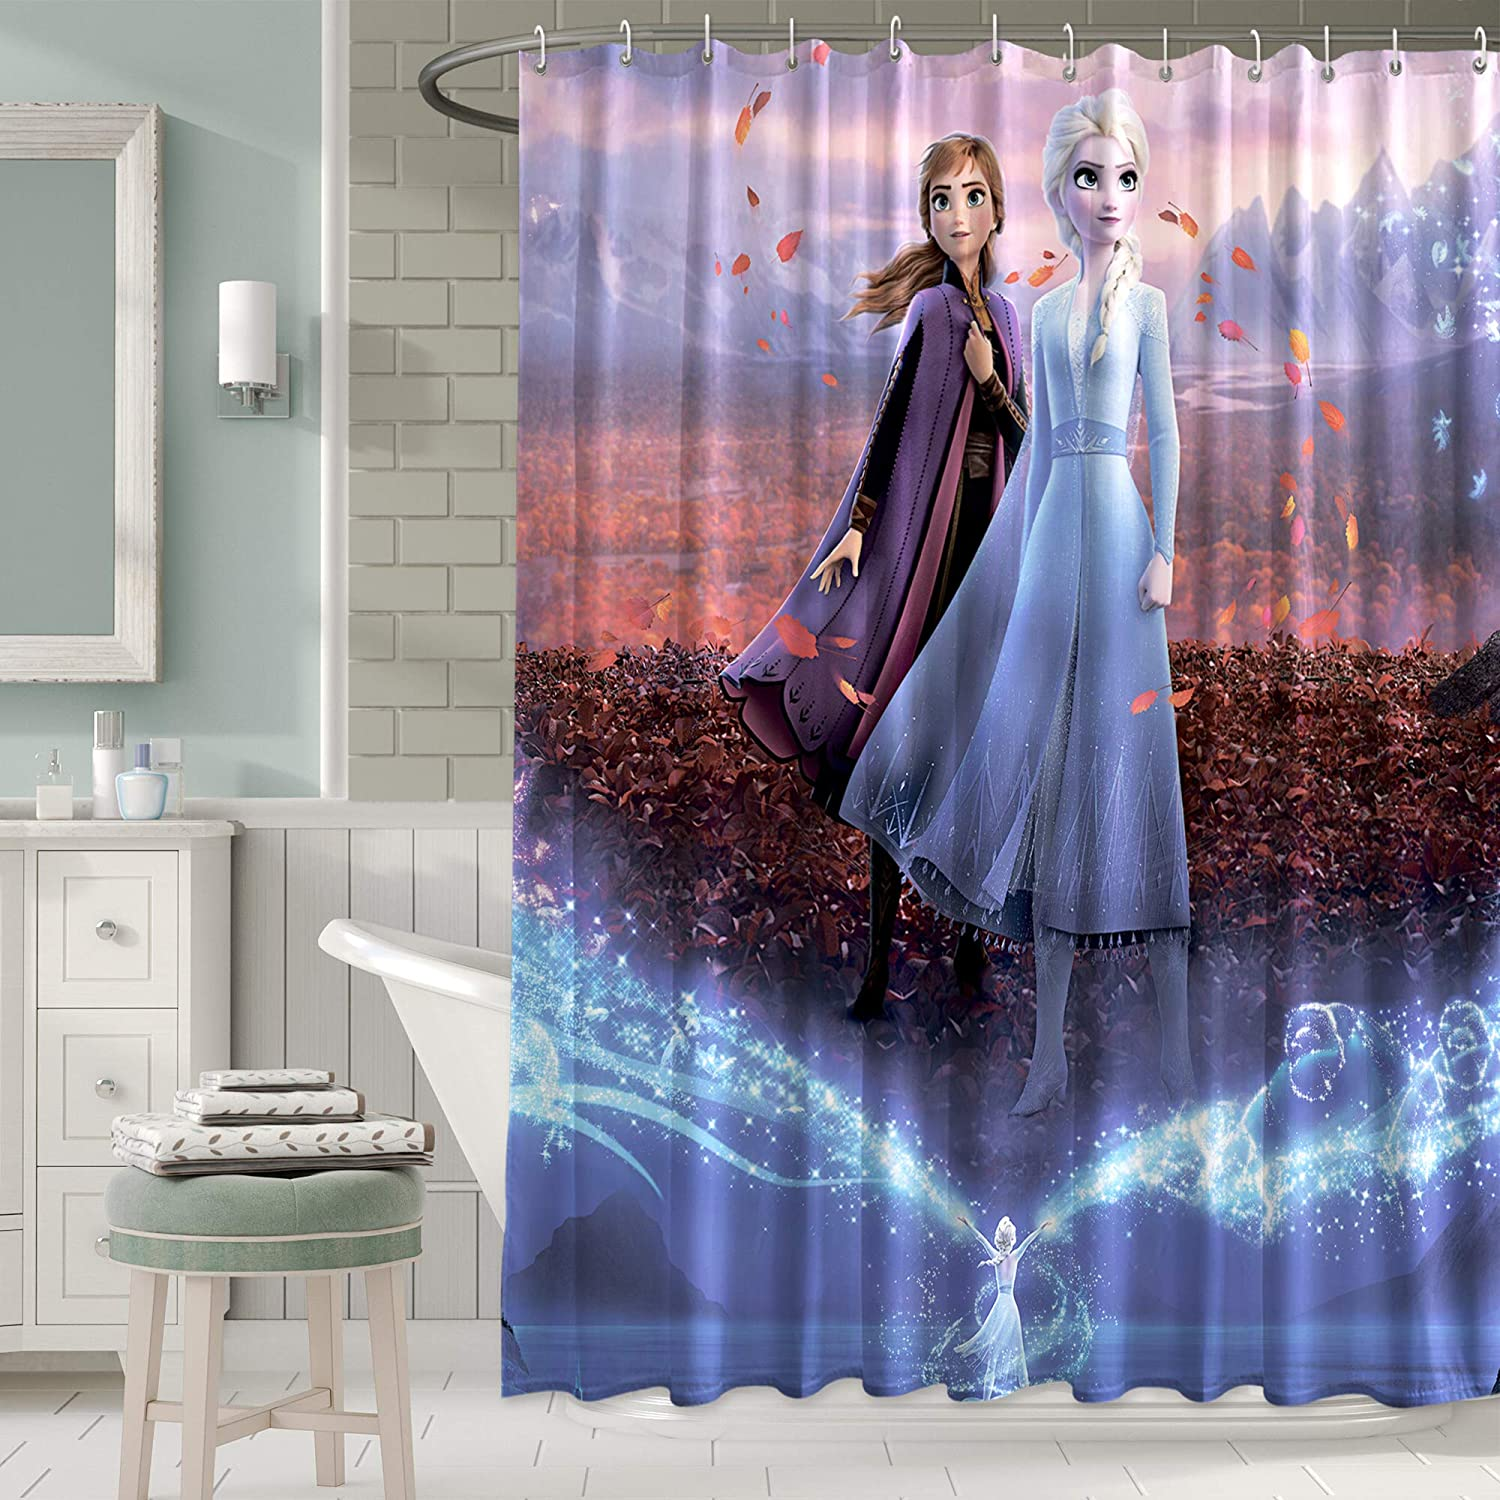 72 inches PntBab Disney Froz/_en Sister Els/_a /& an/_na Fabric Shower Curtain with Hooks for Girls Bathroom Shower Curtain Set